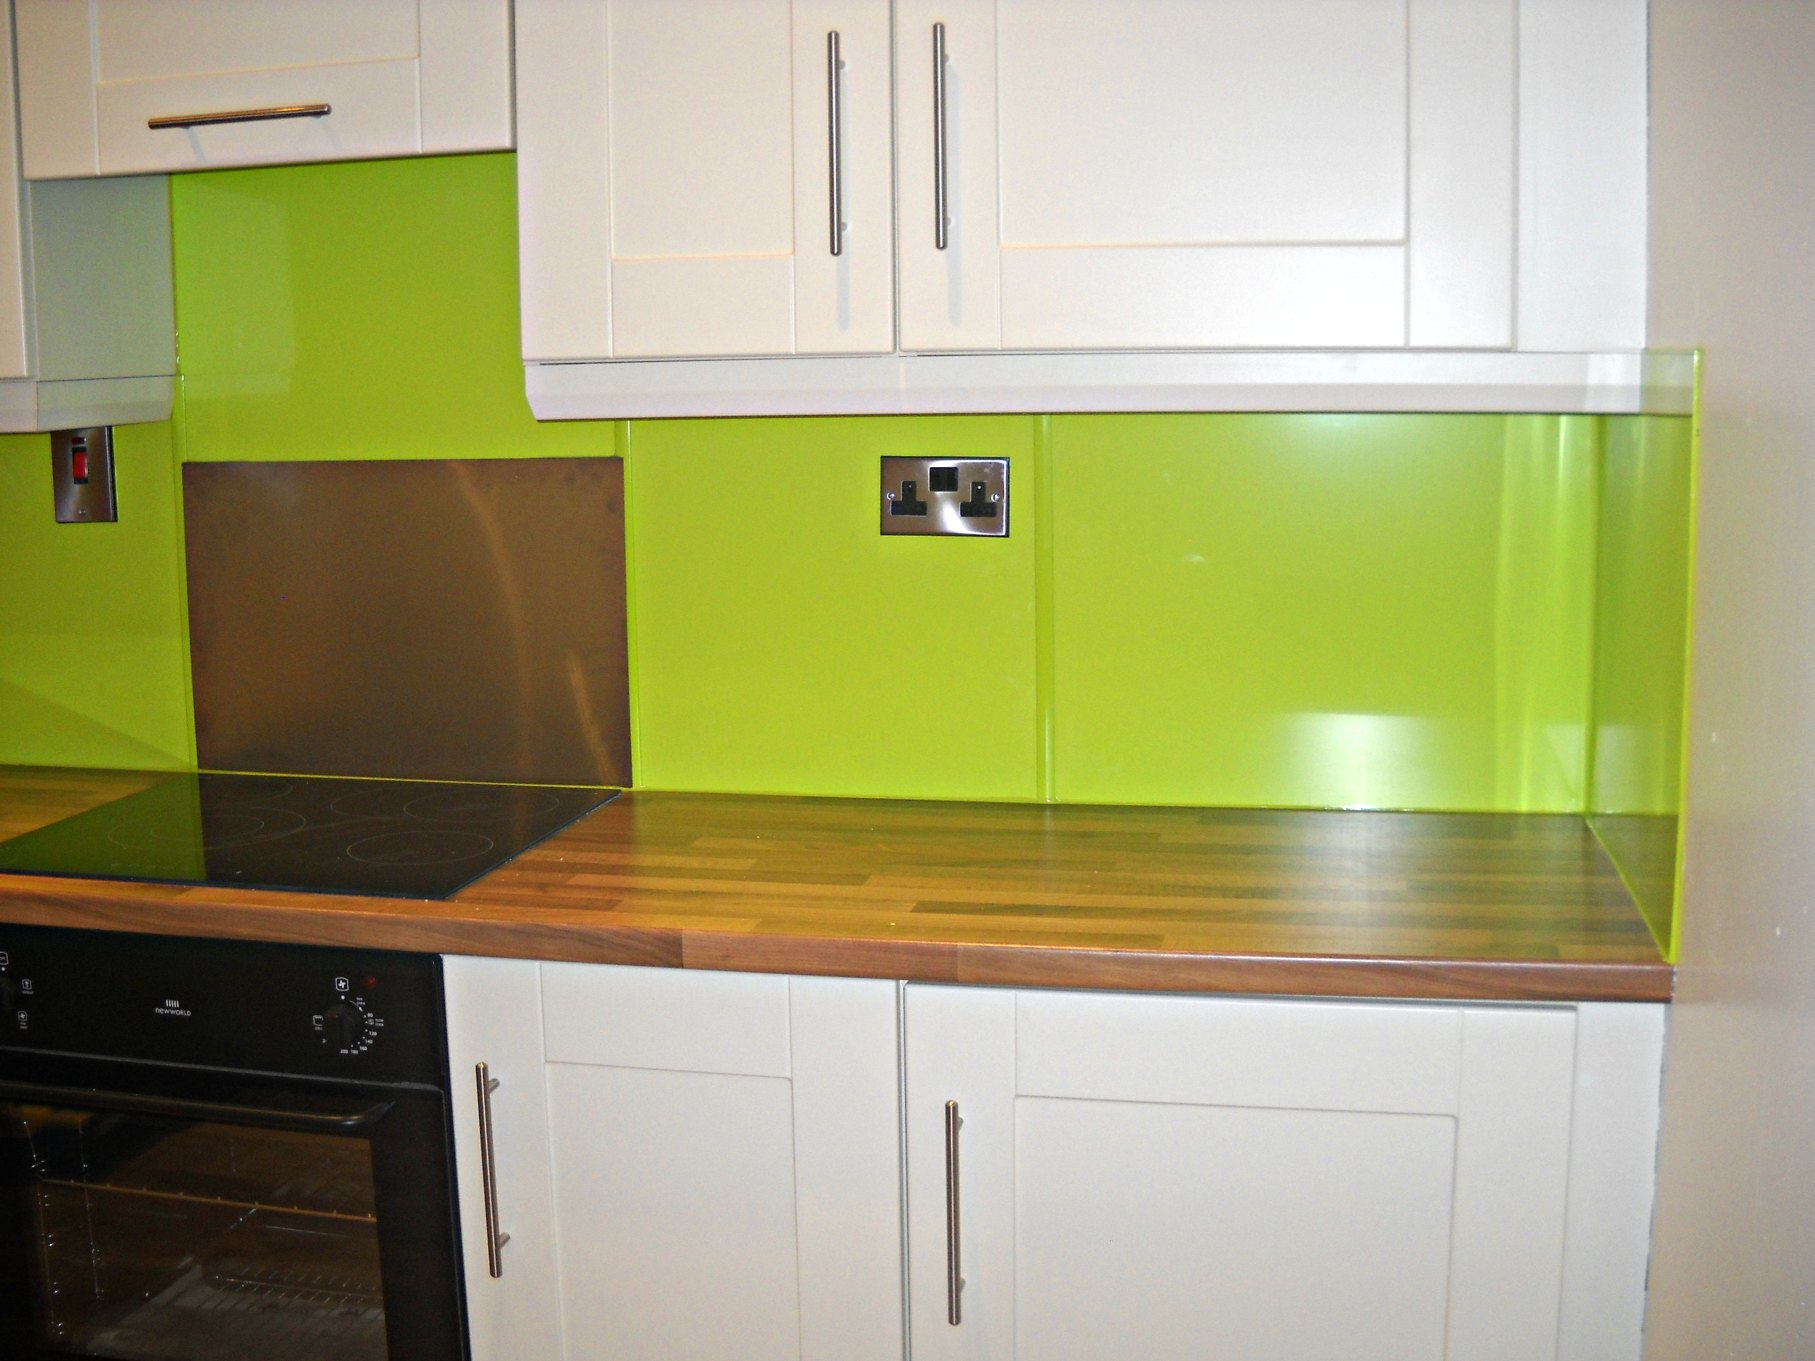 Colour Pvc Kitchen Cladding Enviroclad Hygienic PVC